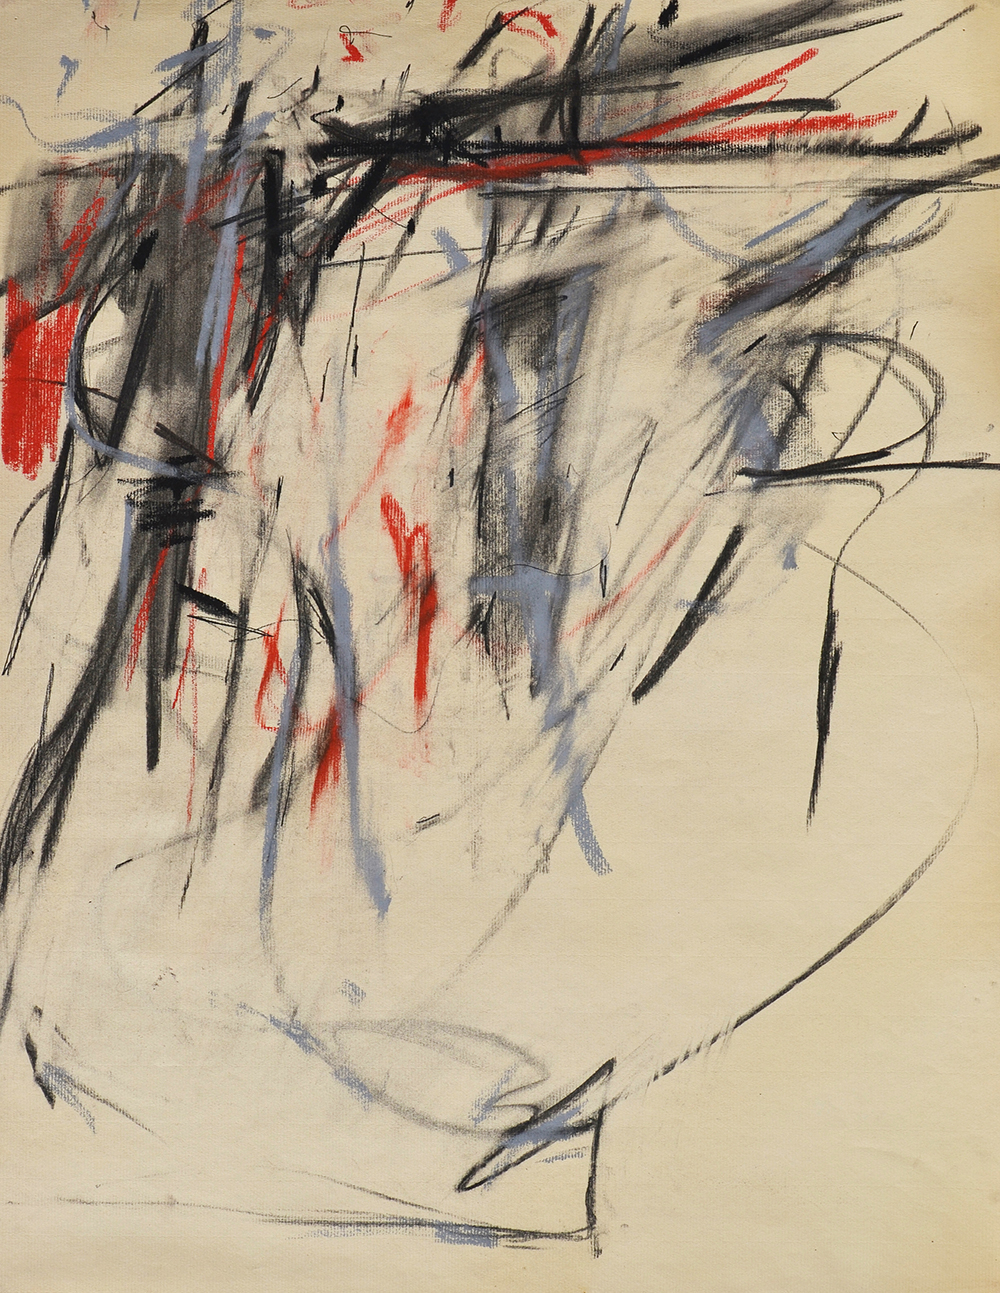 #27, Untitled,   Pastel and charcoal on Ingres laid paper, c. 1955, 25 x 19 inches